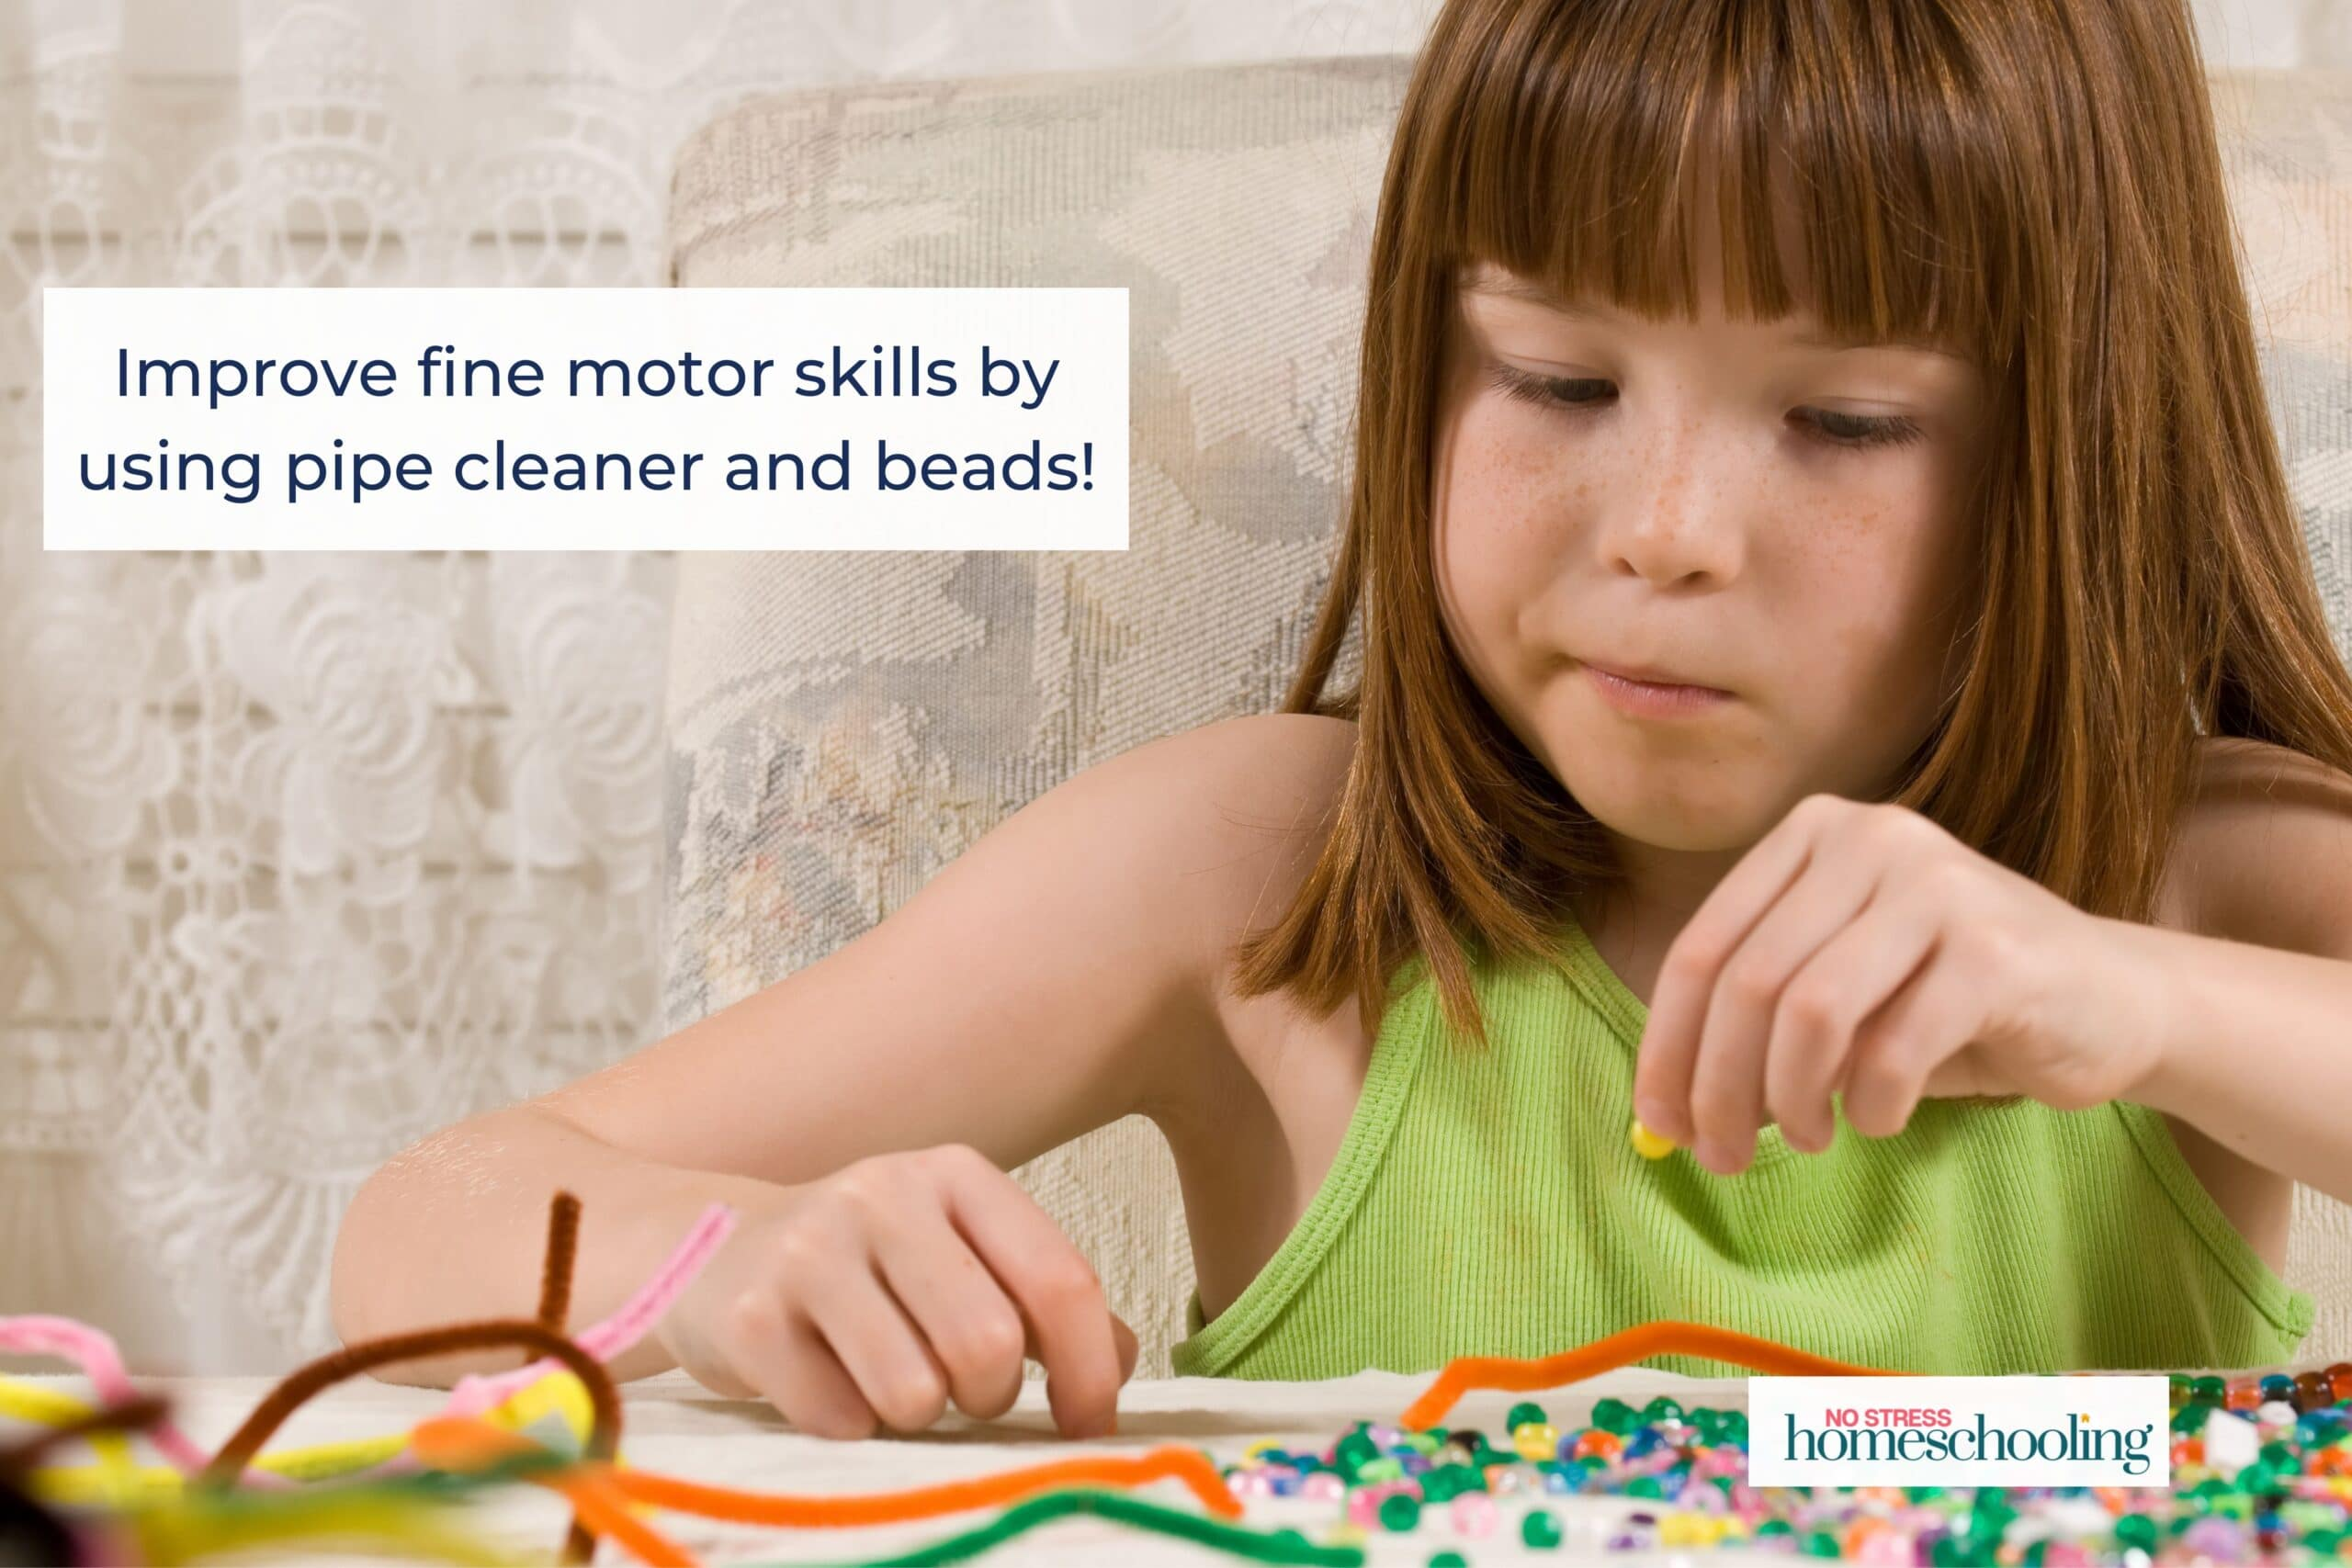 Pencil grasp activities: pipe cleaner and beads image